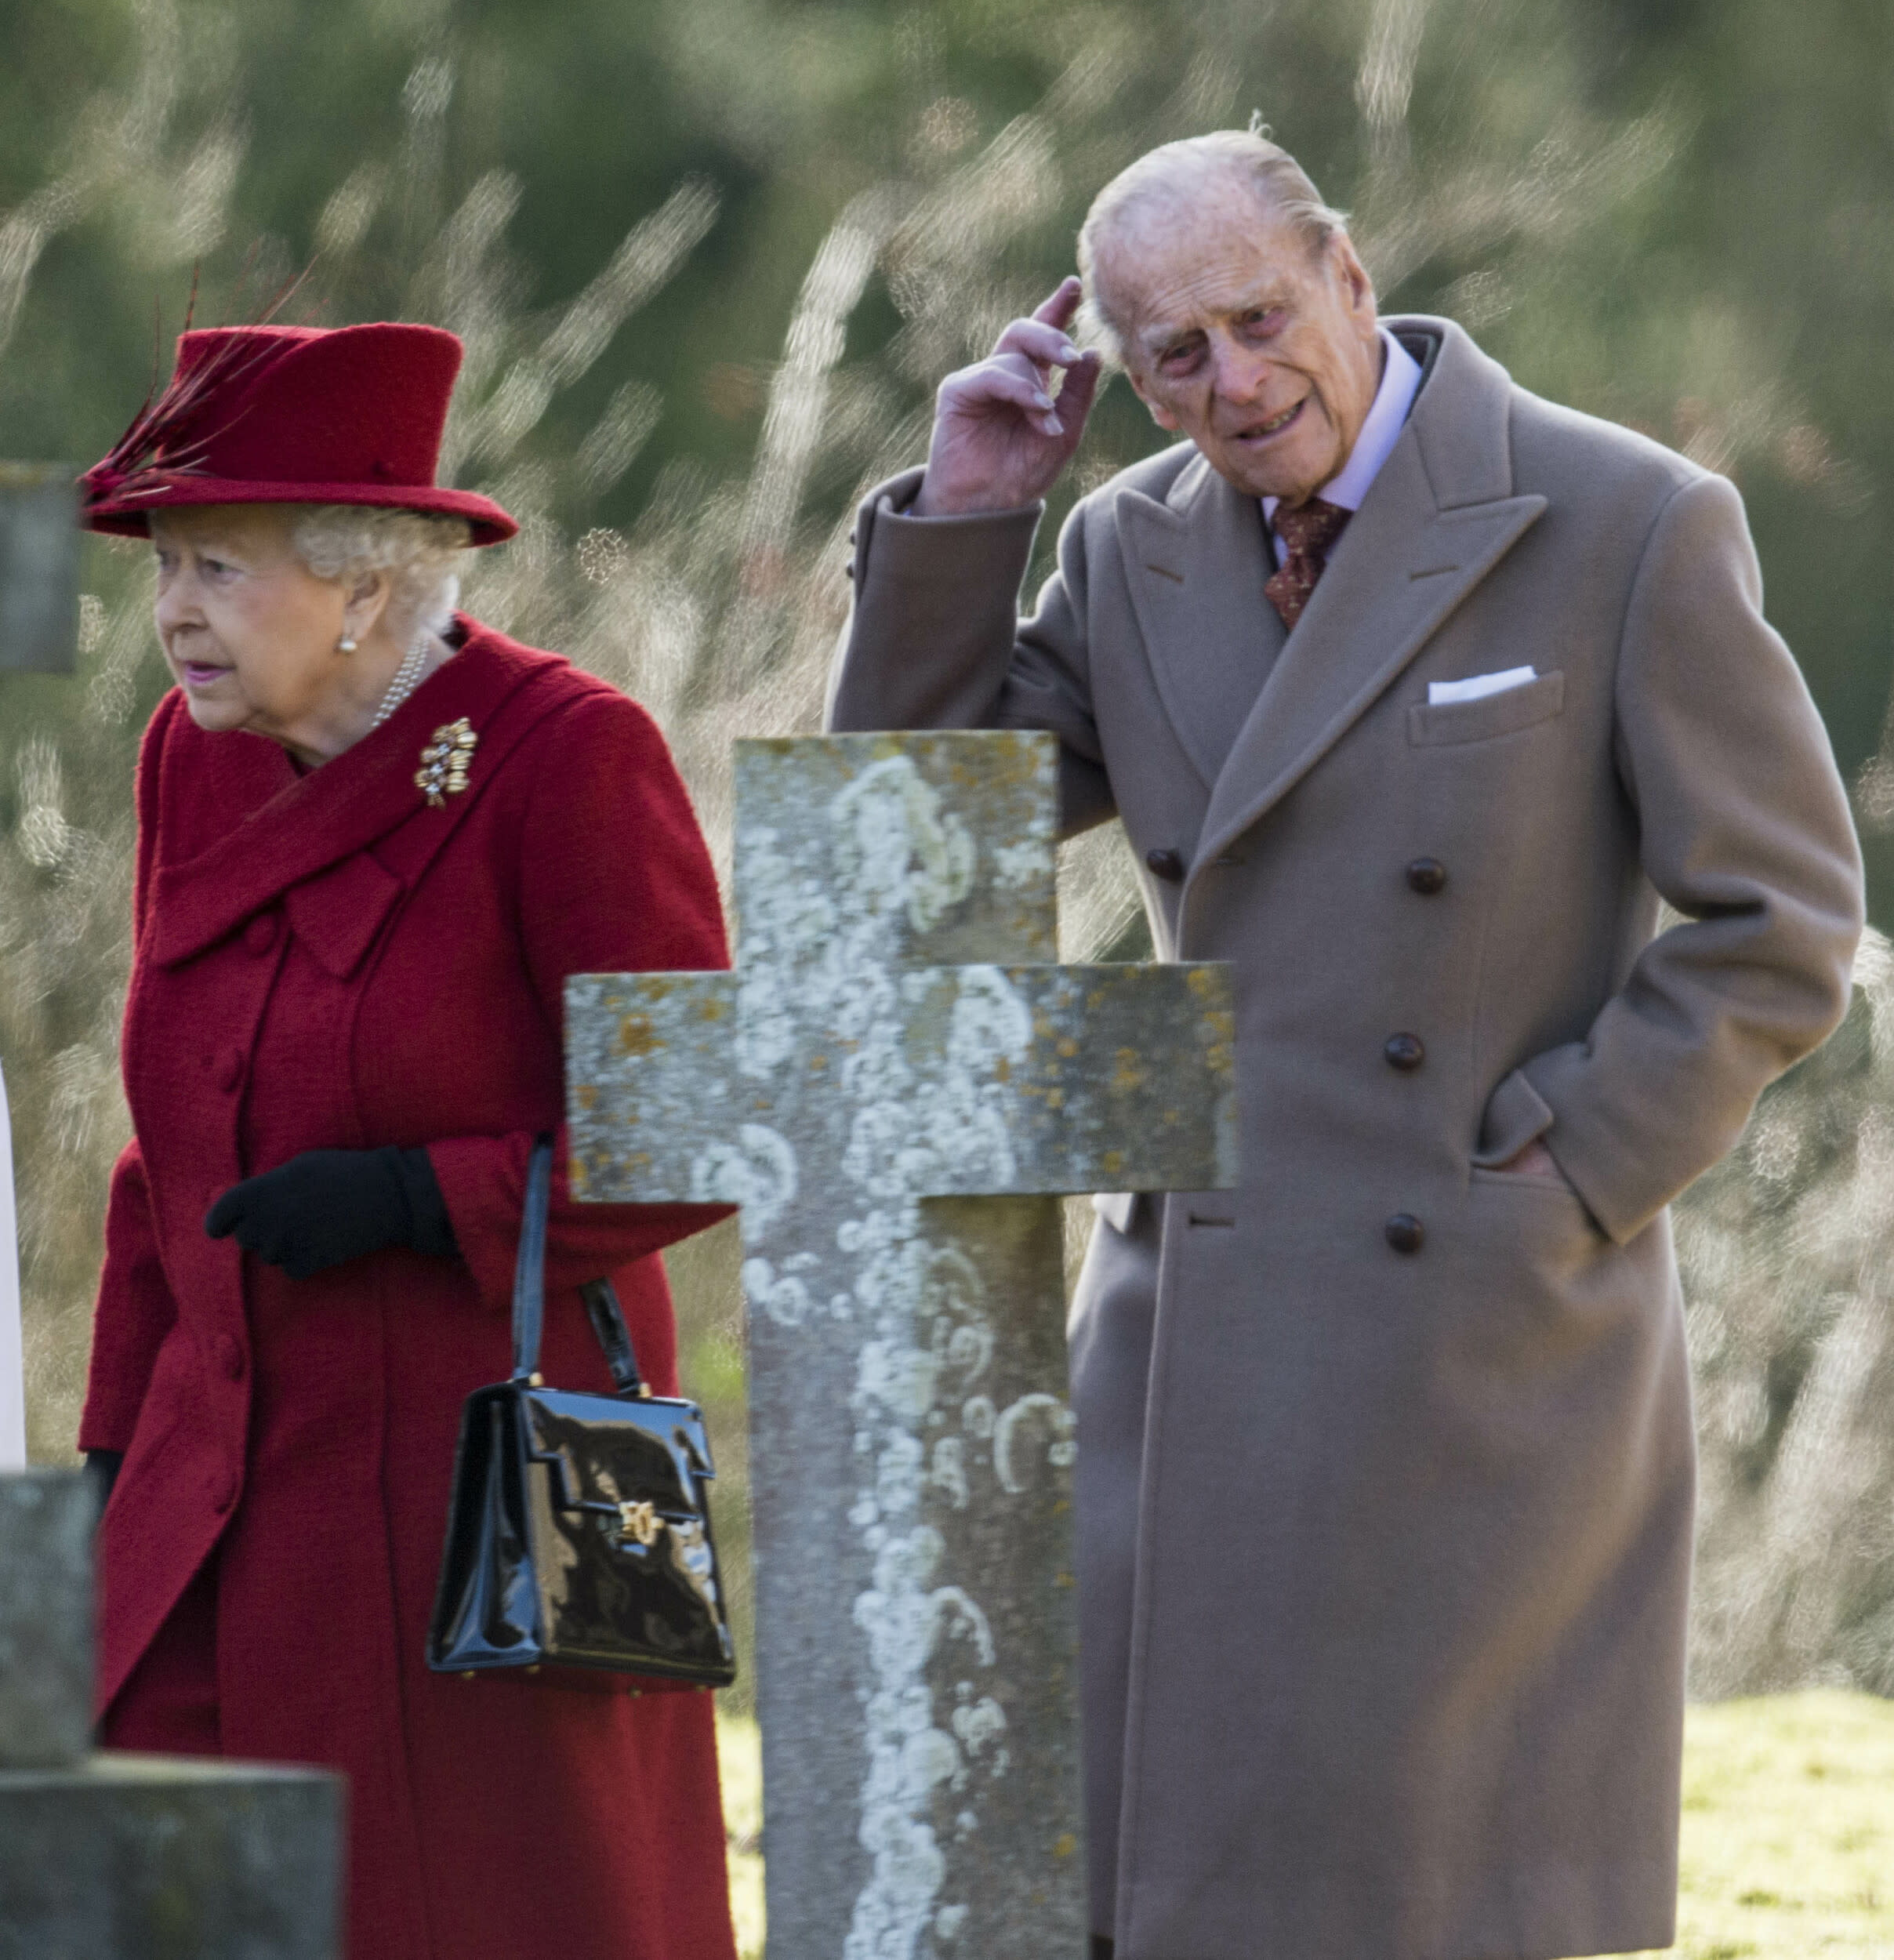 Photo by: KGC-178/STAR MAX/IPx 2018 2/4/18 Queen Elizabeth II and Prince Philip, Duke of Edinburgh attend Sunday Service with Reverend Jonathan Riviere at St Peter and St Paul Church in West Newton, Norfolk.